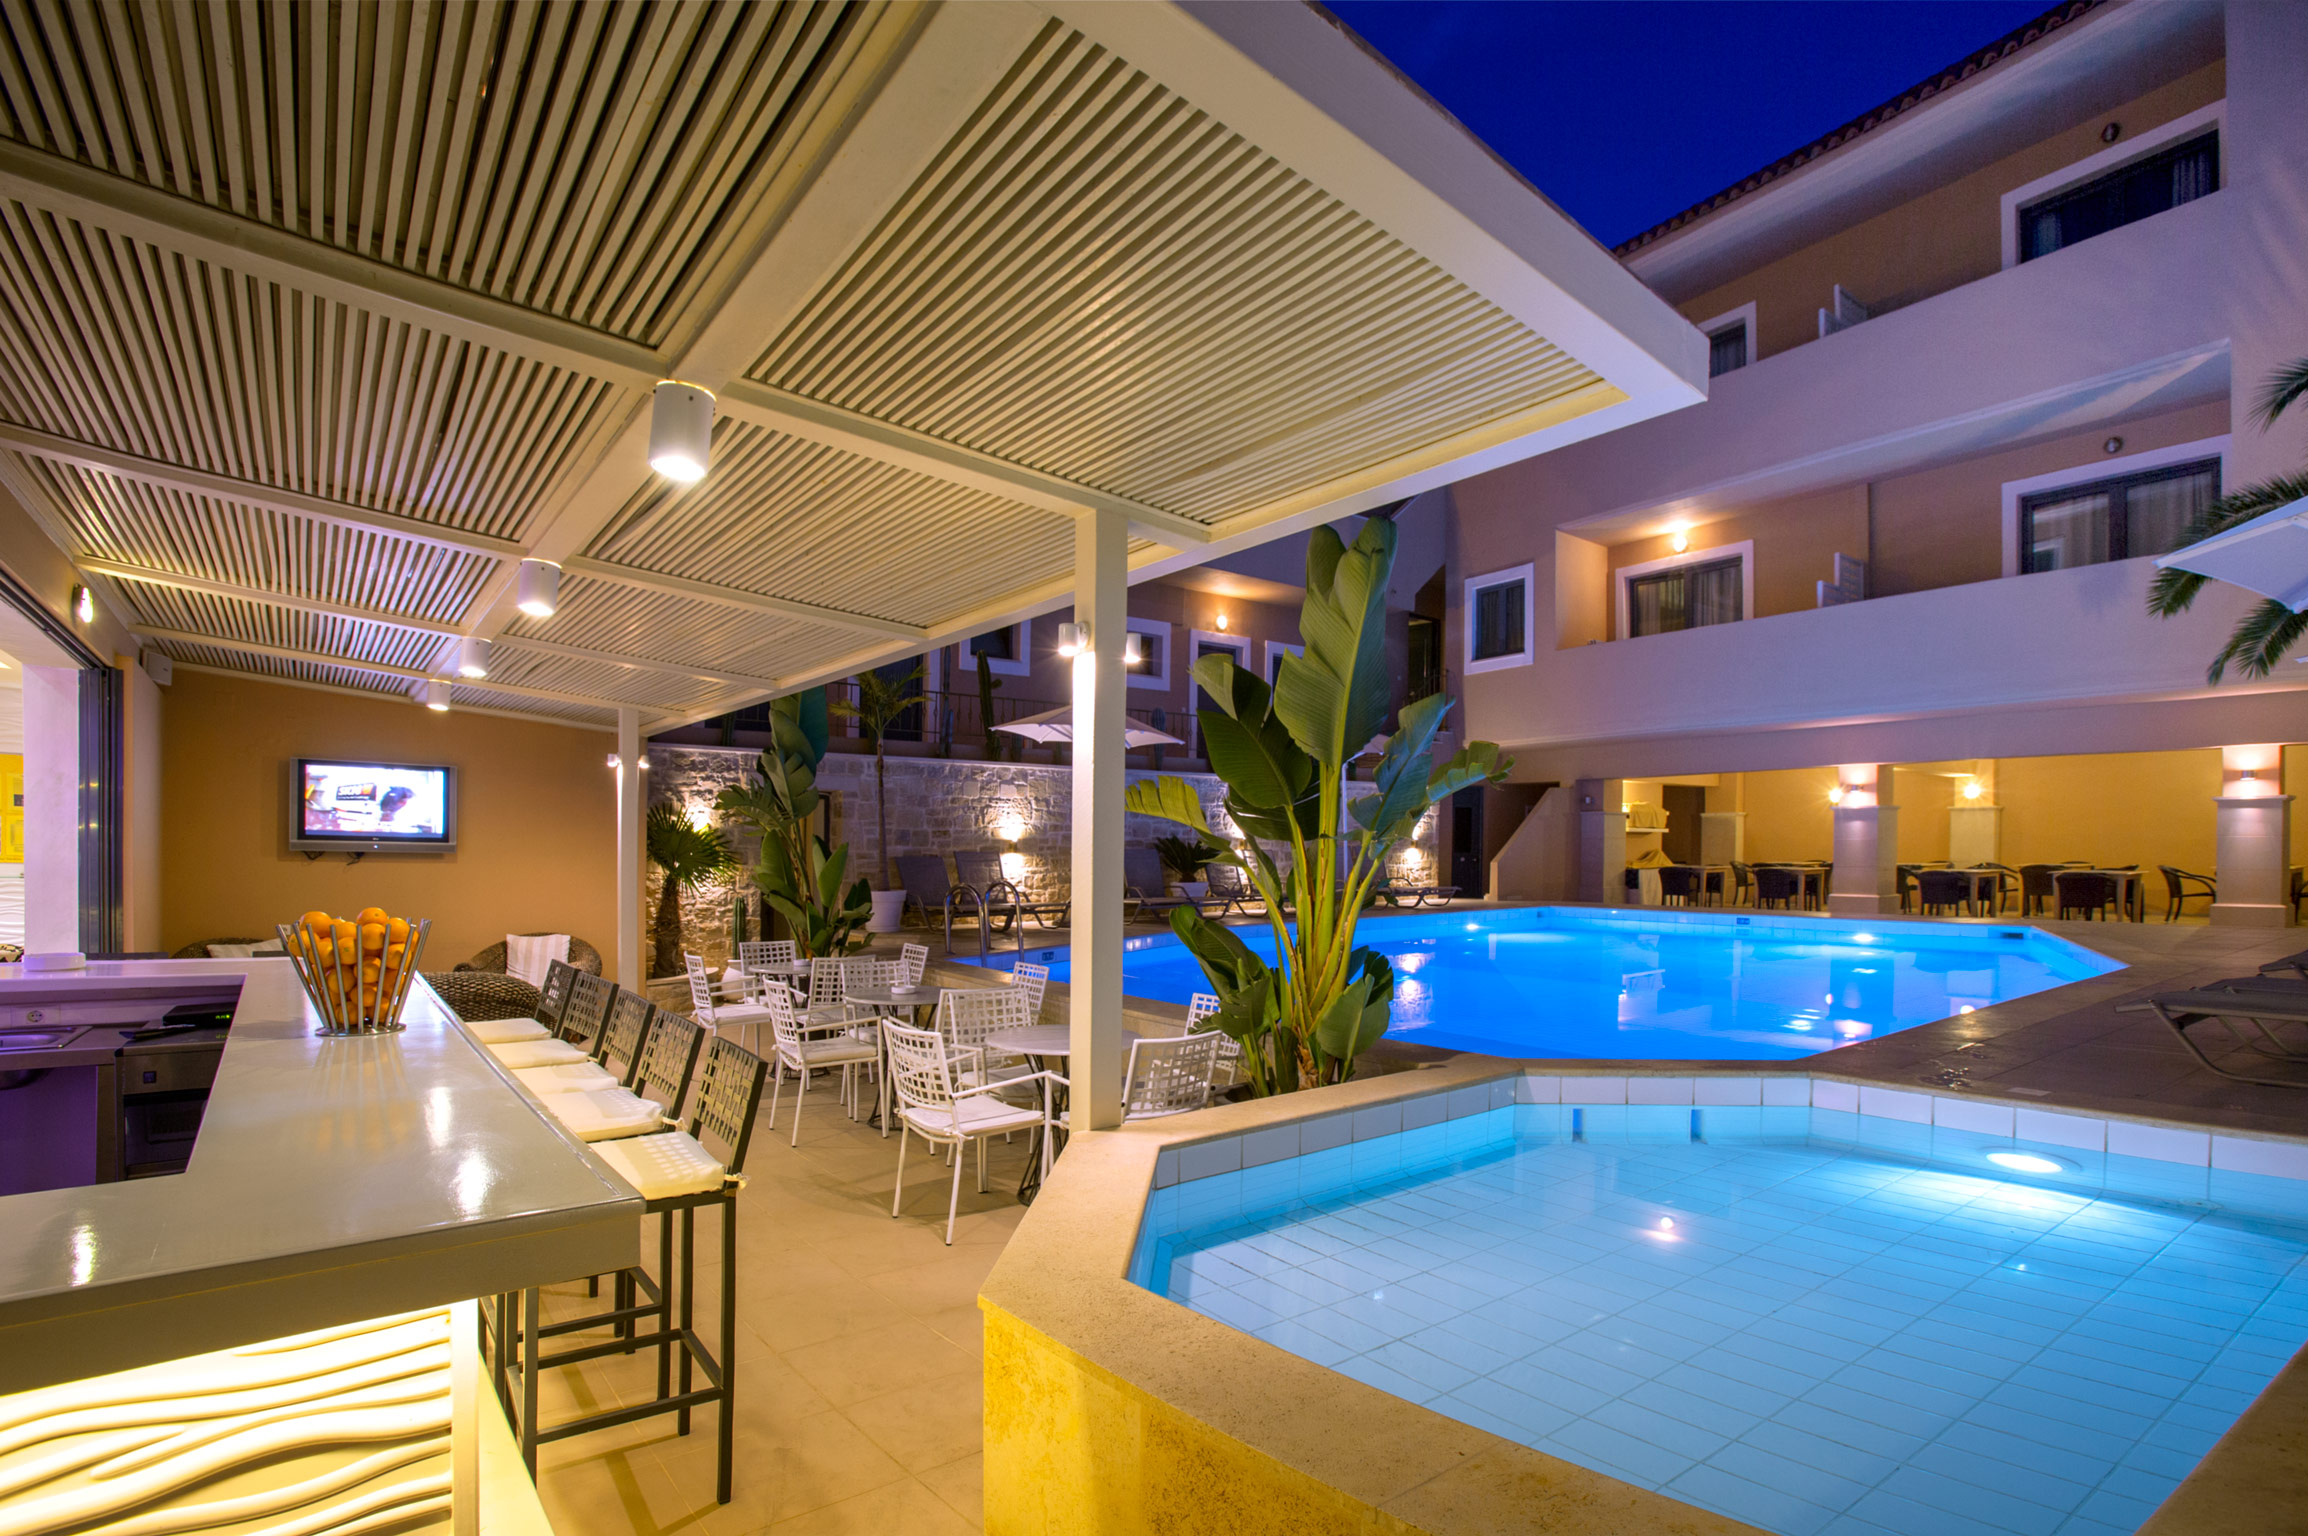 La Stella Apartments & Suites